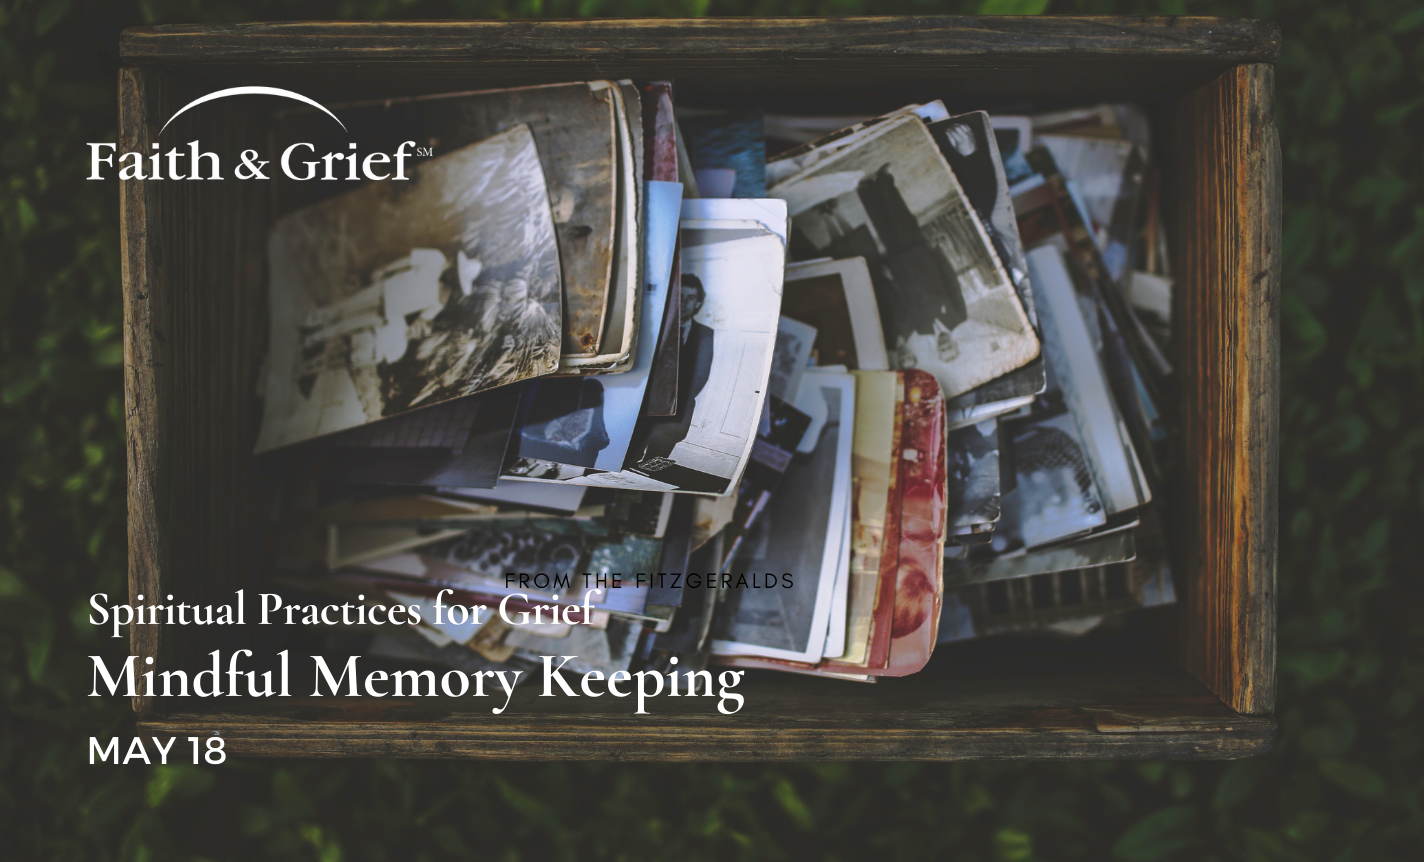 Spiritual Practices for Grief - Mindful Memory Keeping